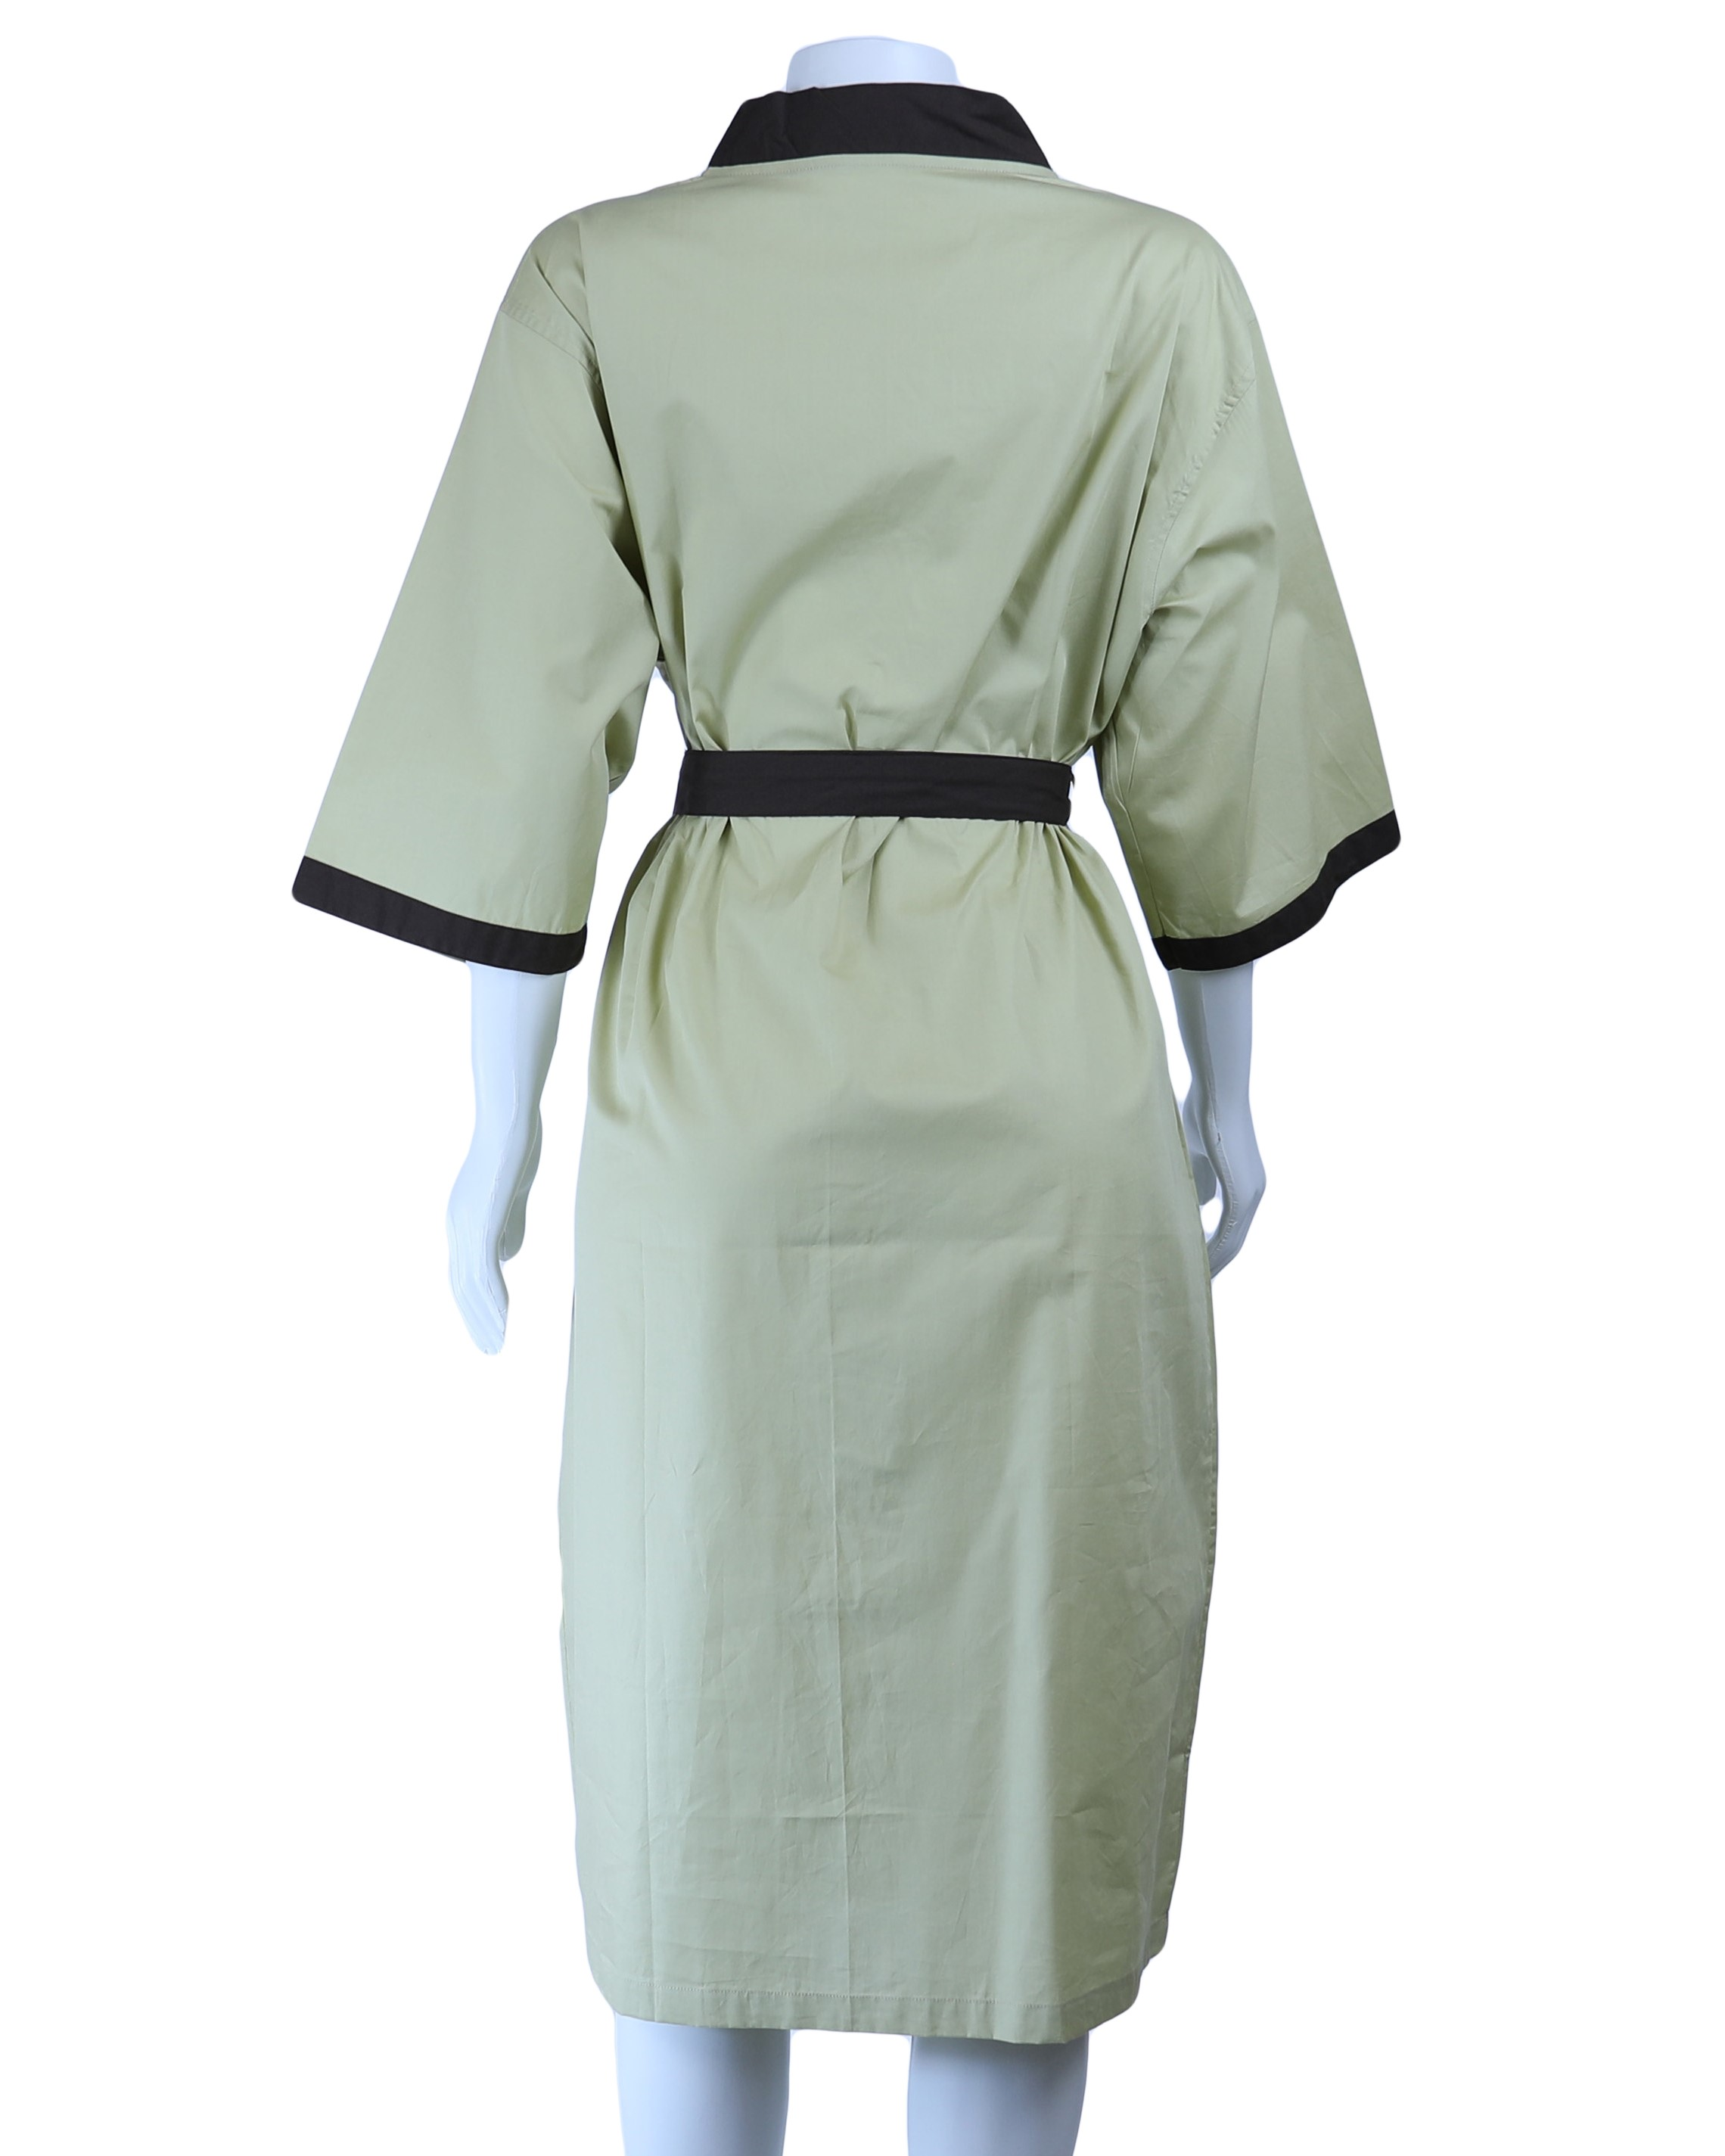 Exam Gown-F10